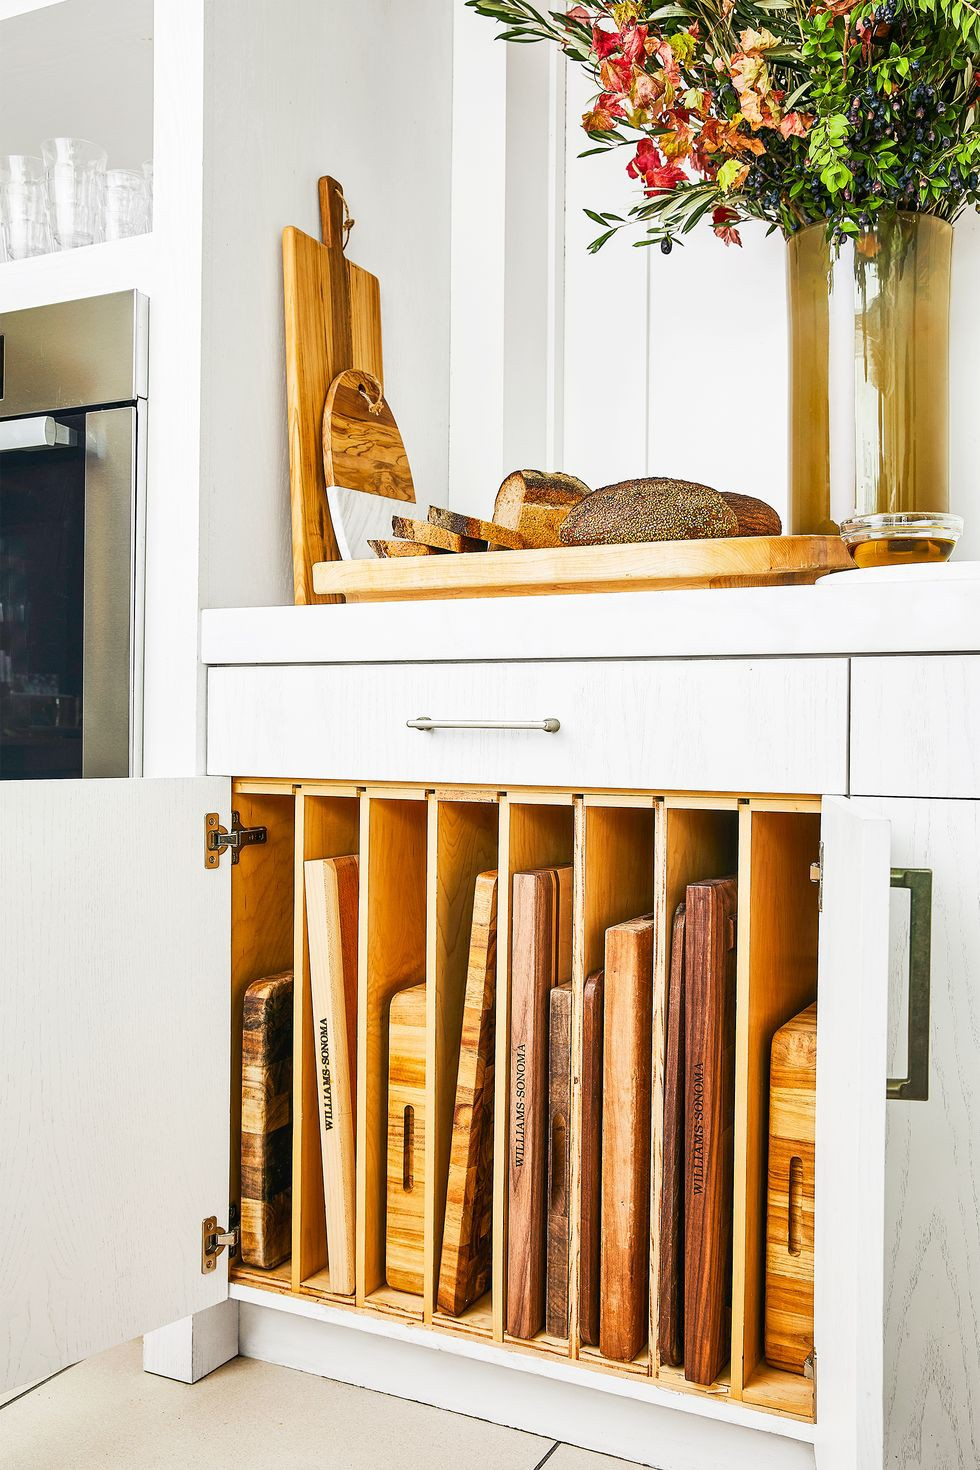 19. Cabinet Dividers For Chopping boards